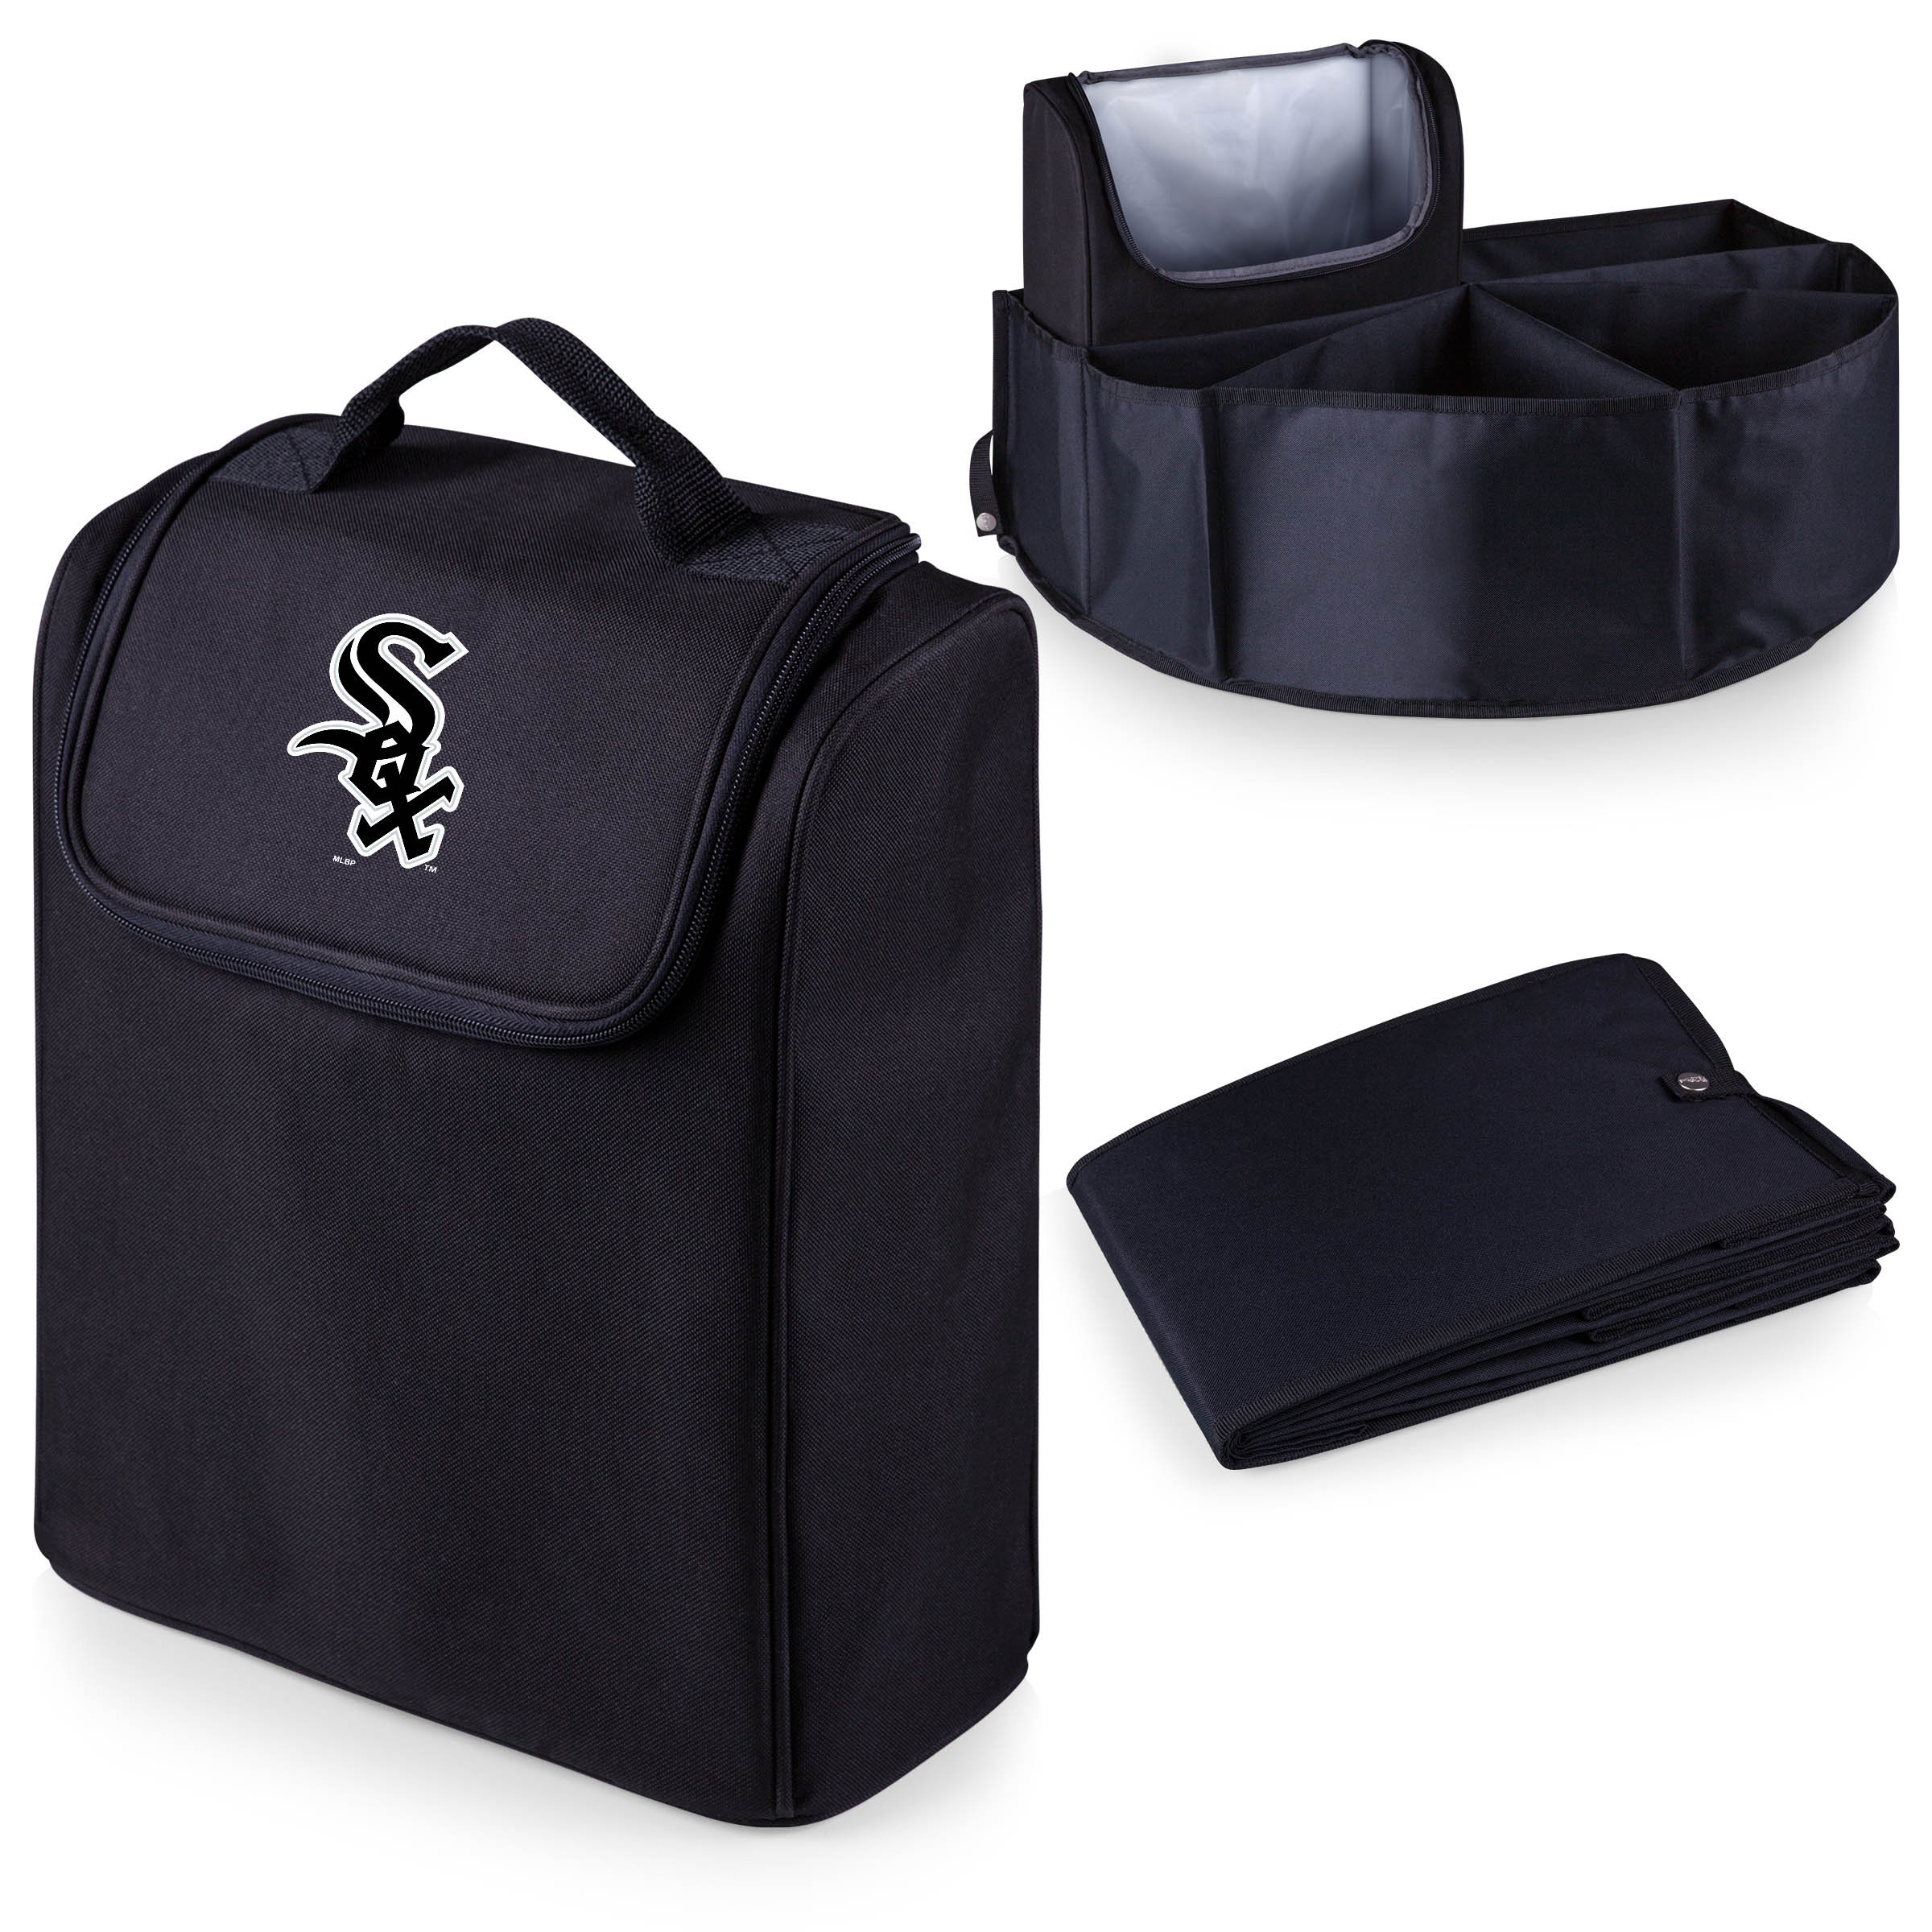 Chicago White Sox Trunk Boss Organizer with Cooler - Black - No Size